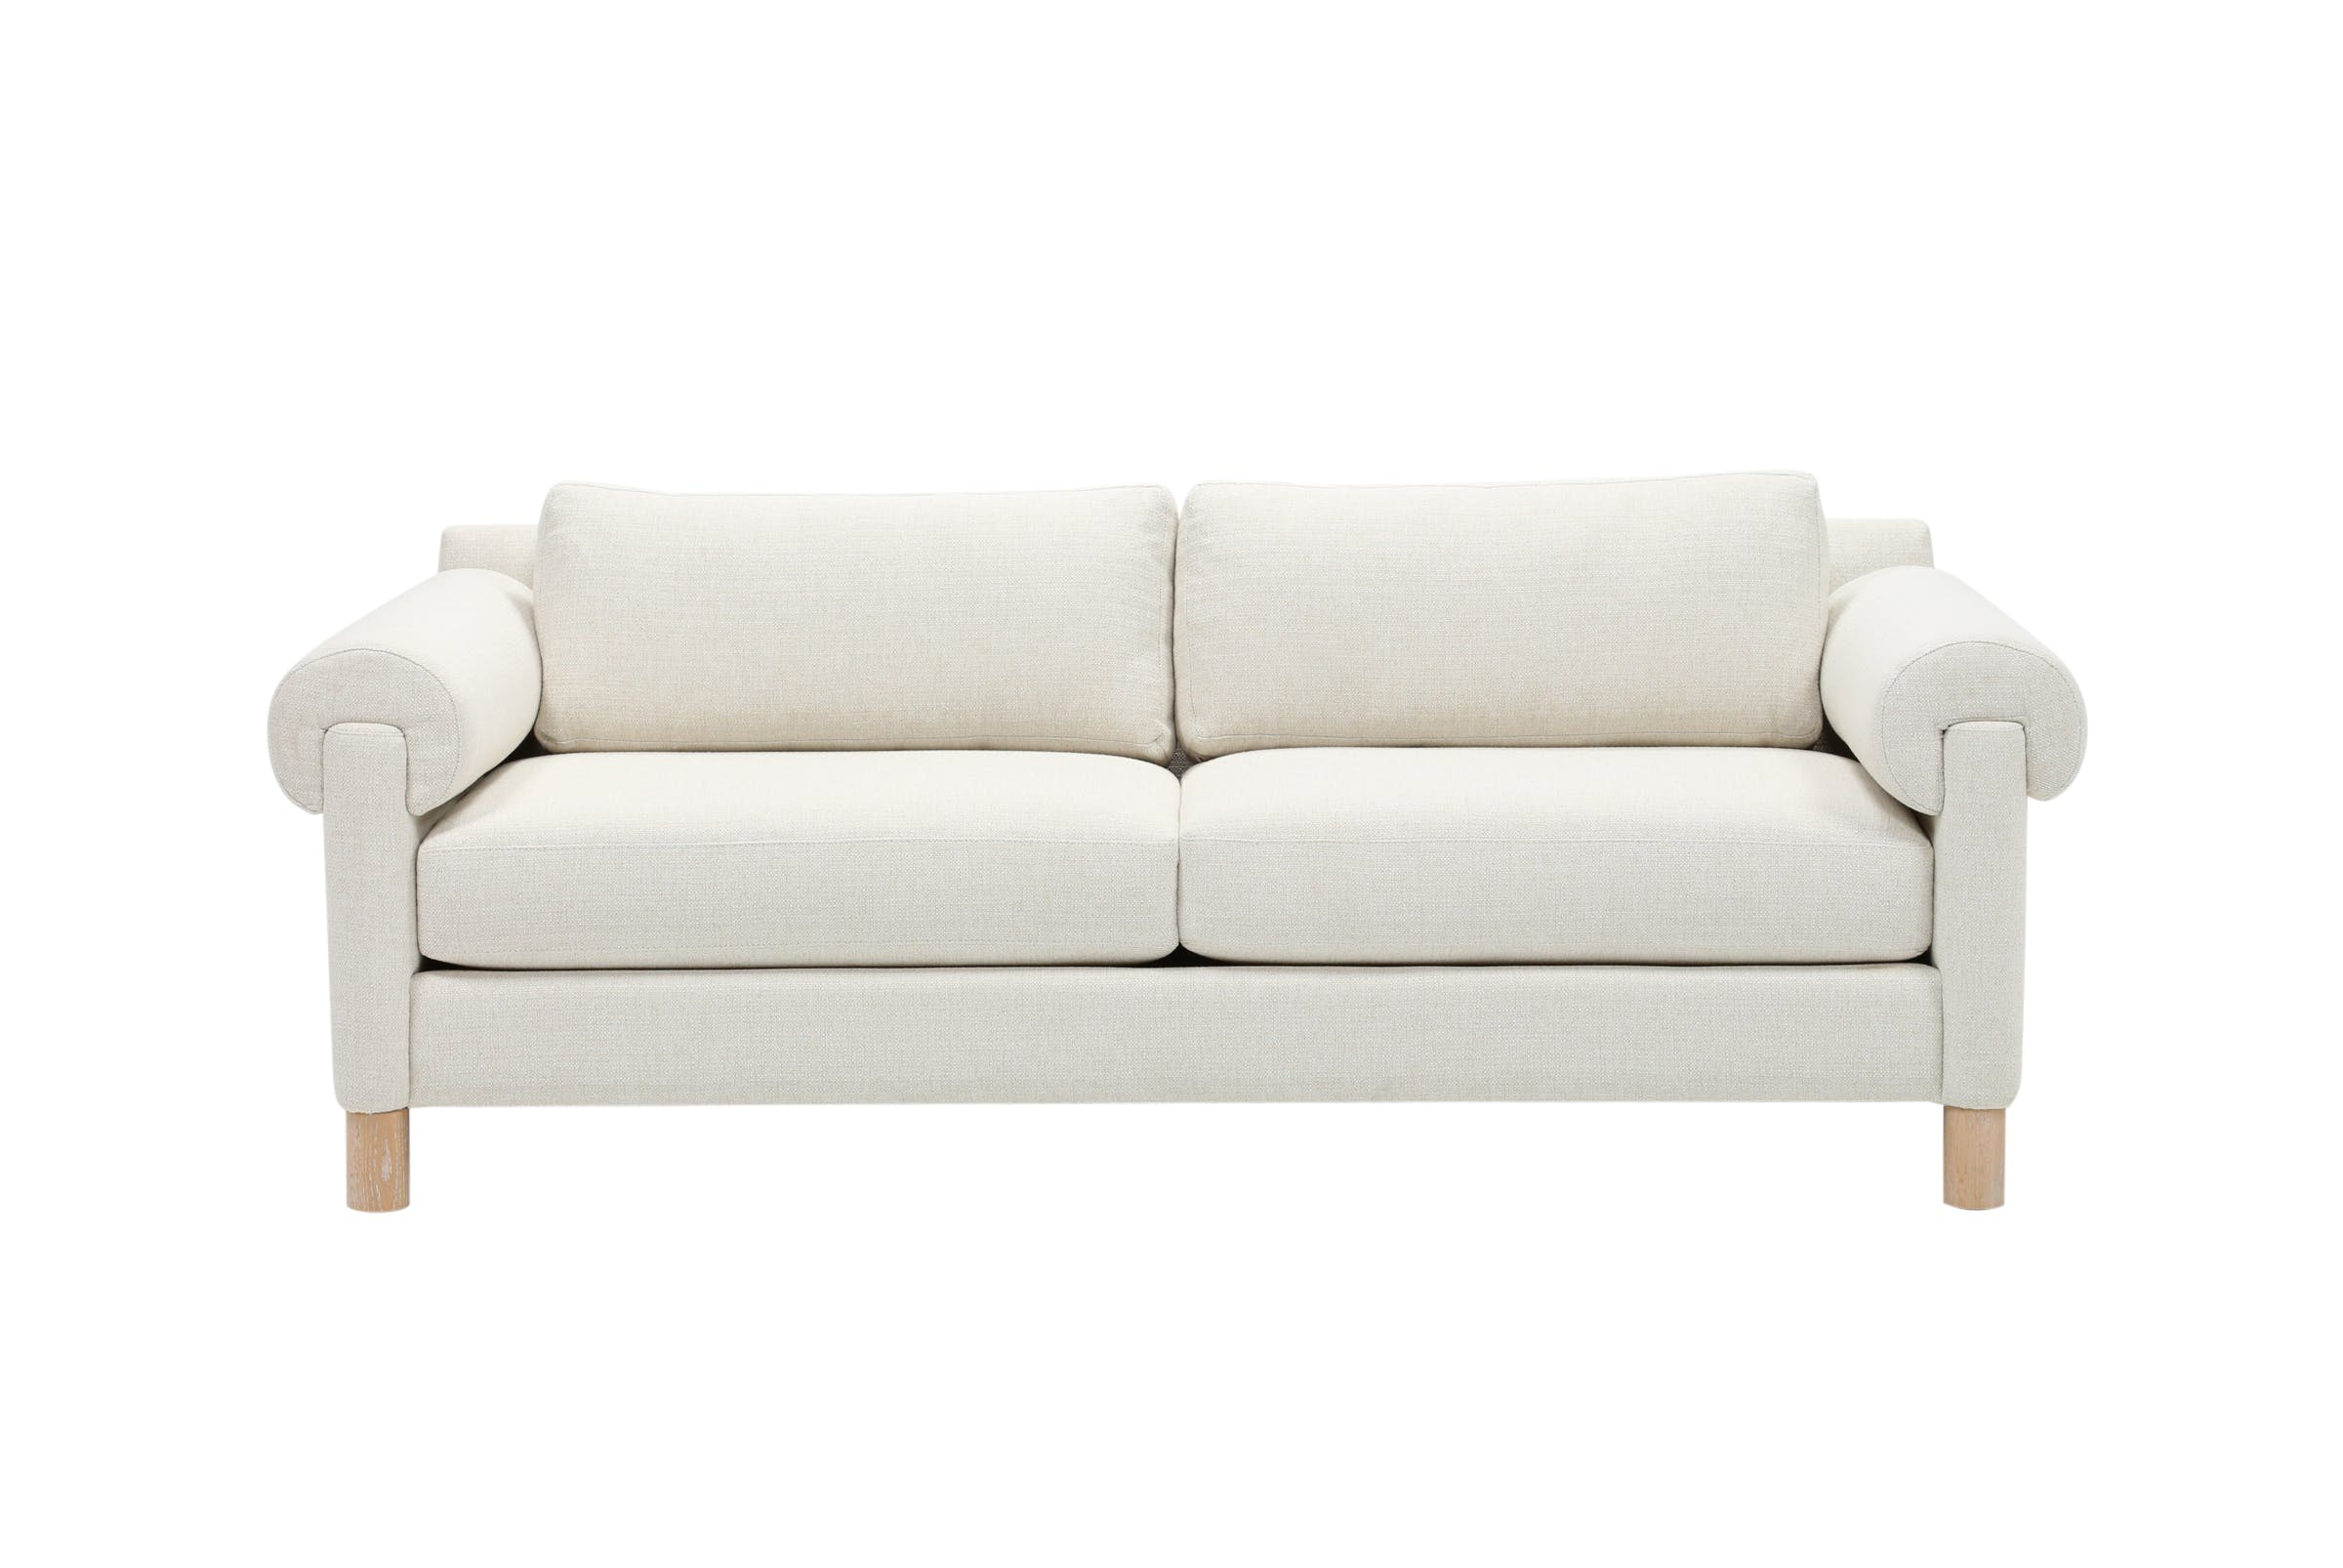 Newest Nate Berkus Just Launched A Home Collection With Hubby Jeremiah With Ames Arm Sofa Chairs By Nate Berkus And Jeremiah Brent (View 9 of 20)